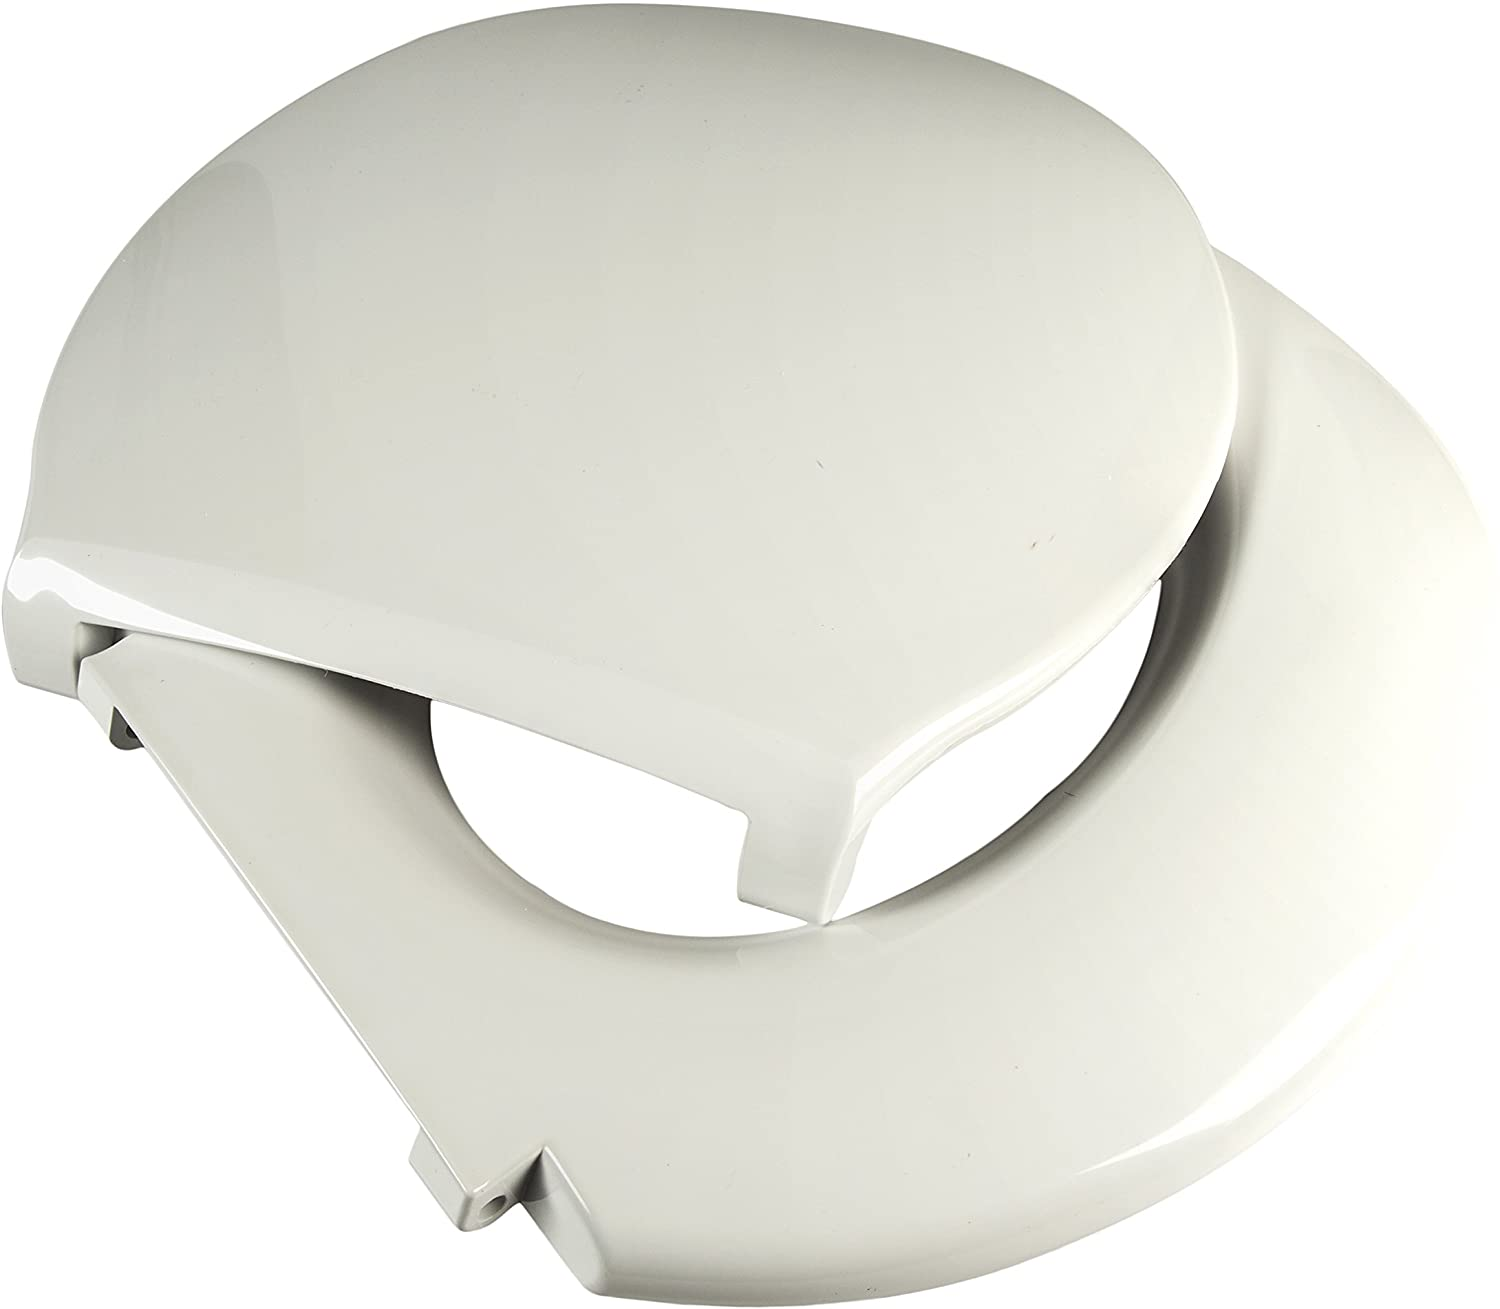 Big John 6-W Oversized Toilet Seat